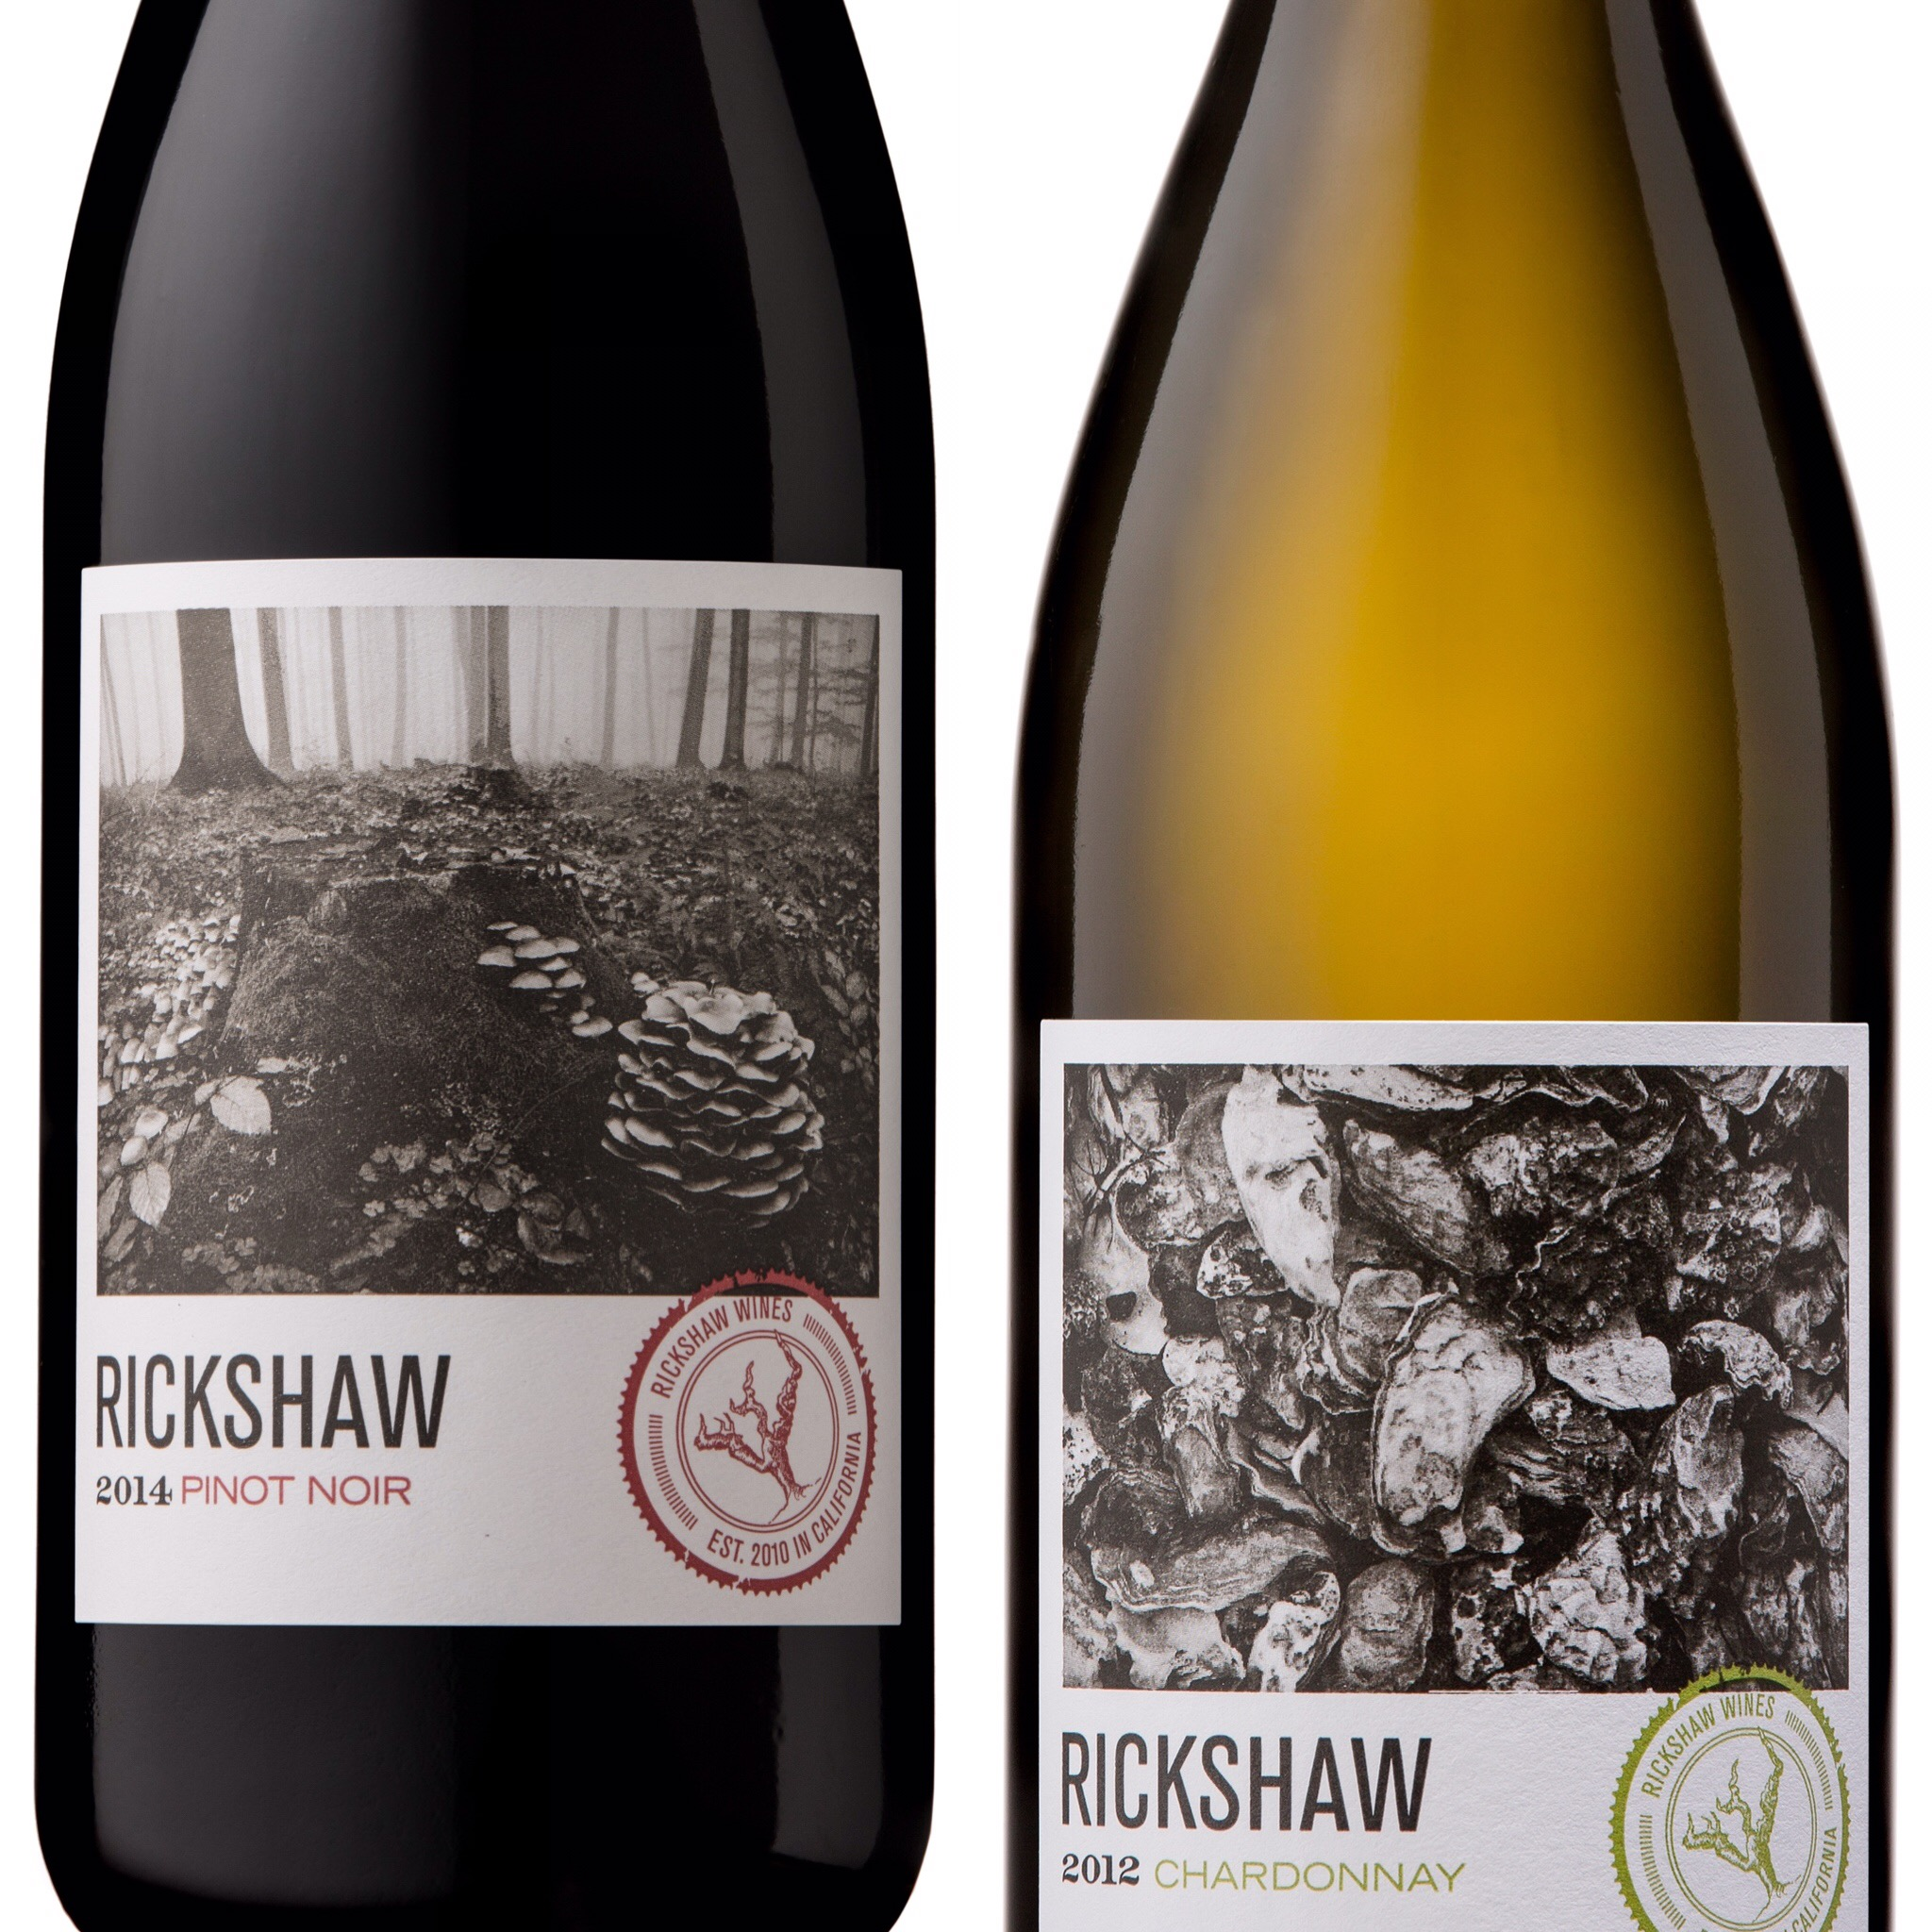 Two bottles of wine with labels for pinot noir and chardonnay